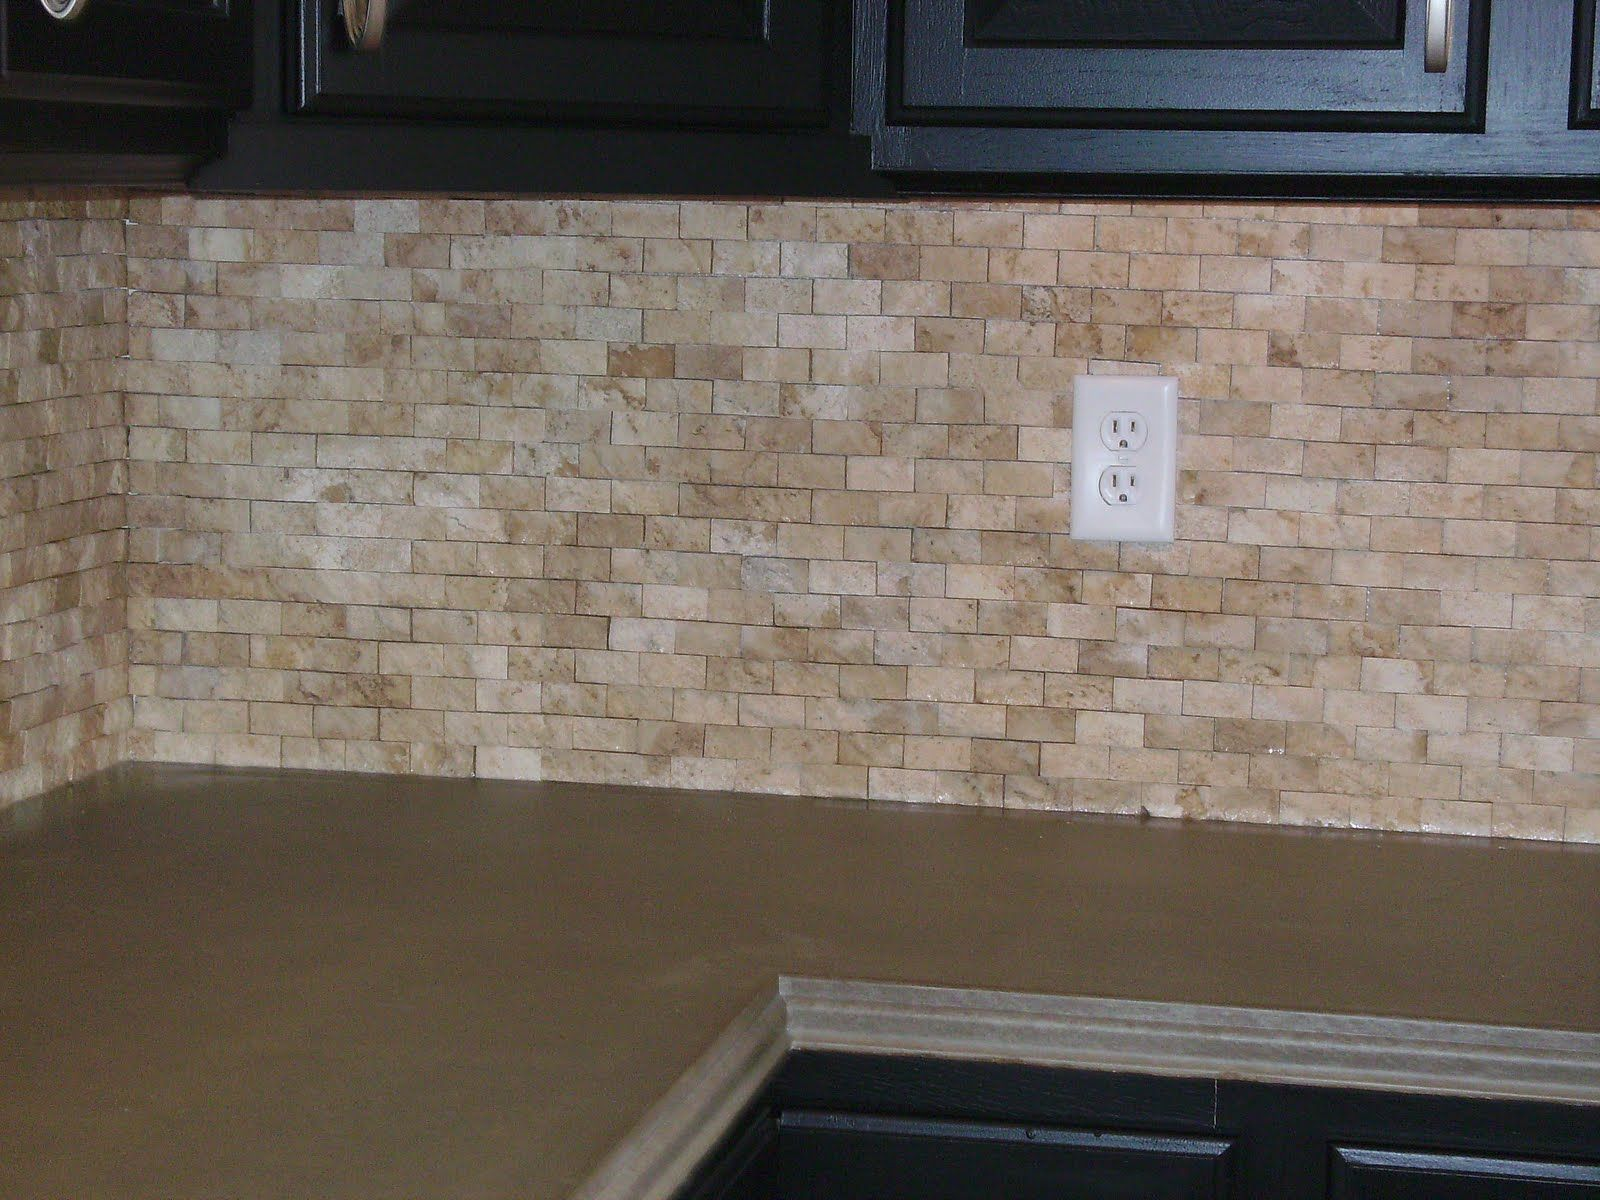 Split Faced Stone Backsplash With